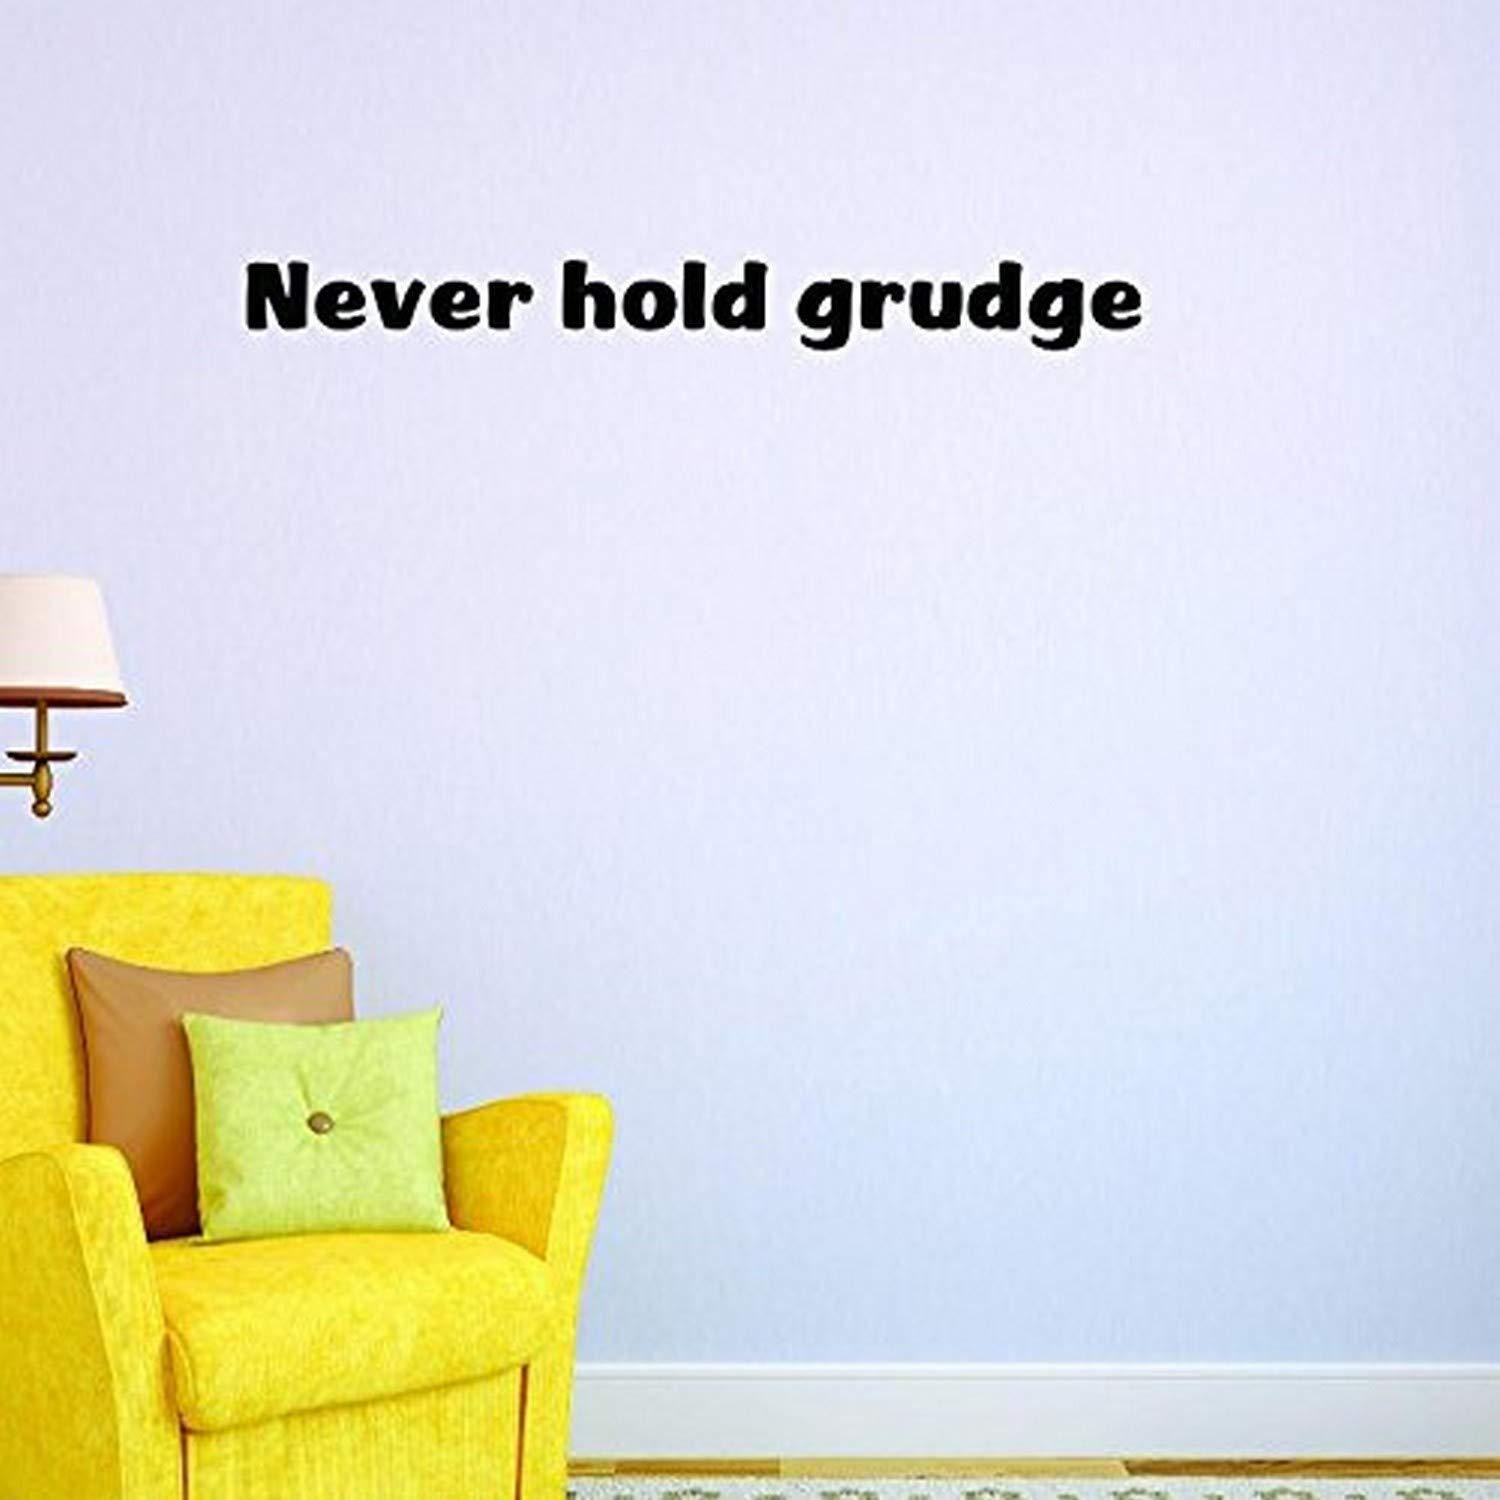 10 Inches X 36 Inches Color Wall Art Size Design with Vinyl US V SOS 1025 3 Top Selling Decals Never Hold Grudge Black 10 x 36